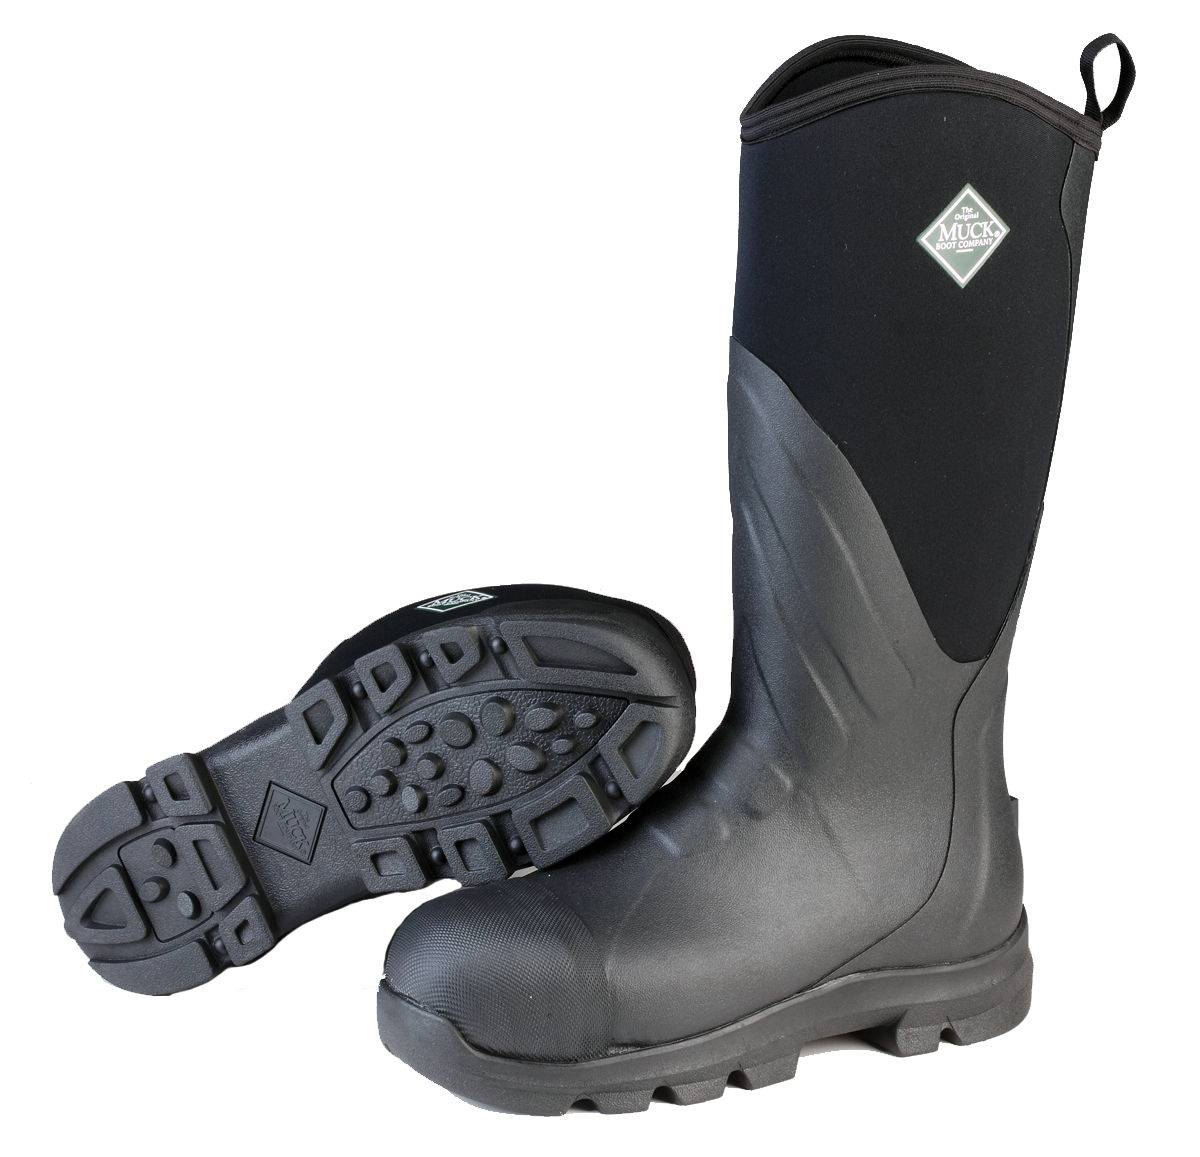 Muck Boots Muck Grit Steel Toe - Mens - Black